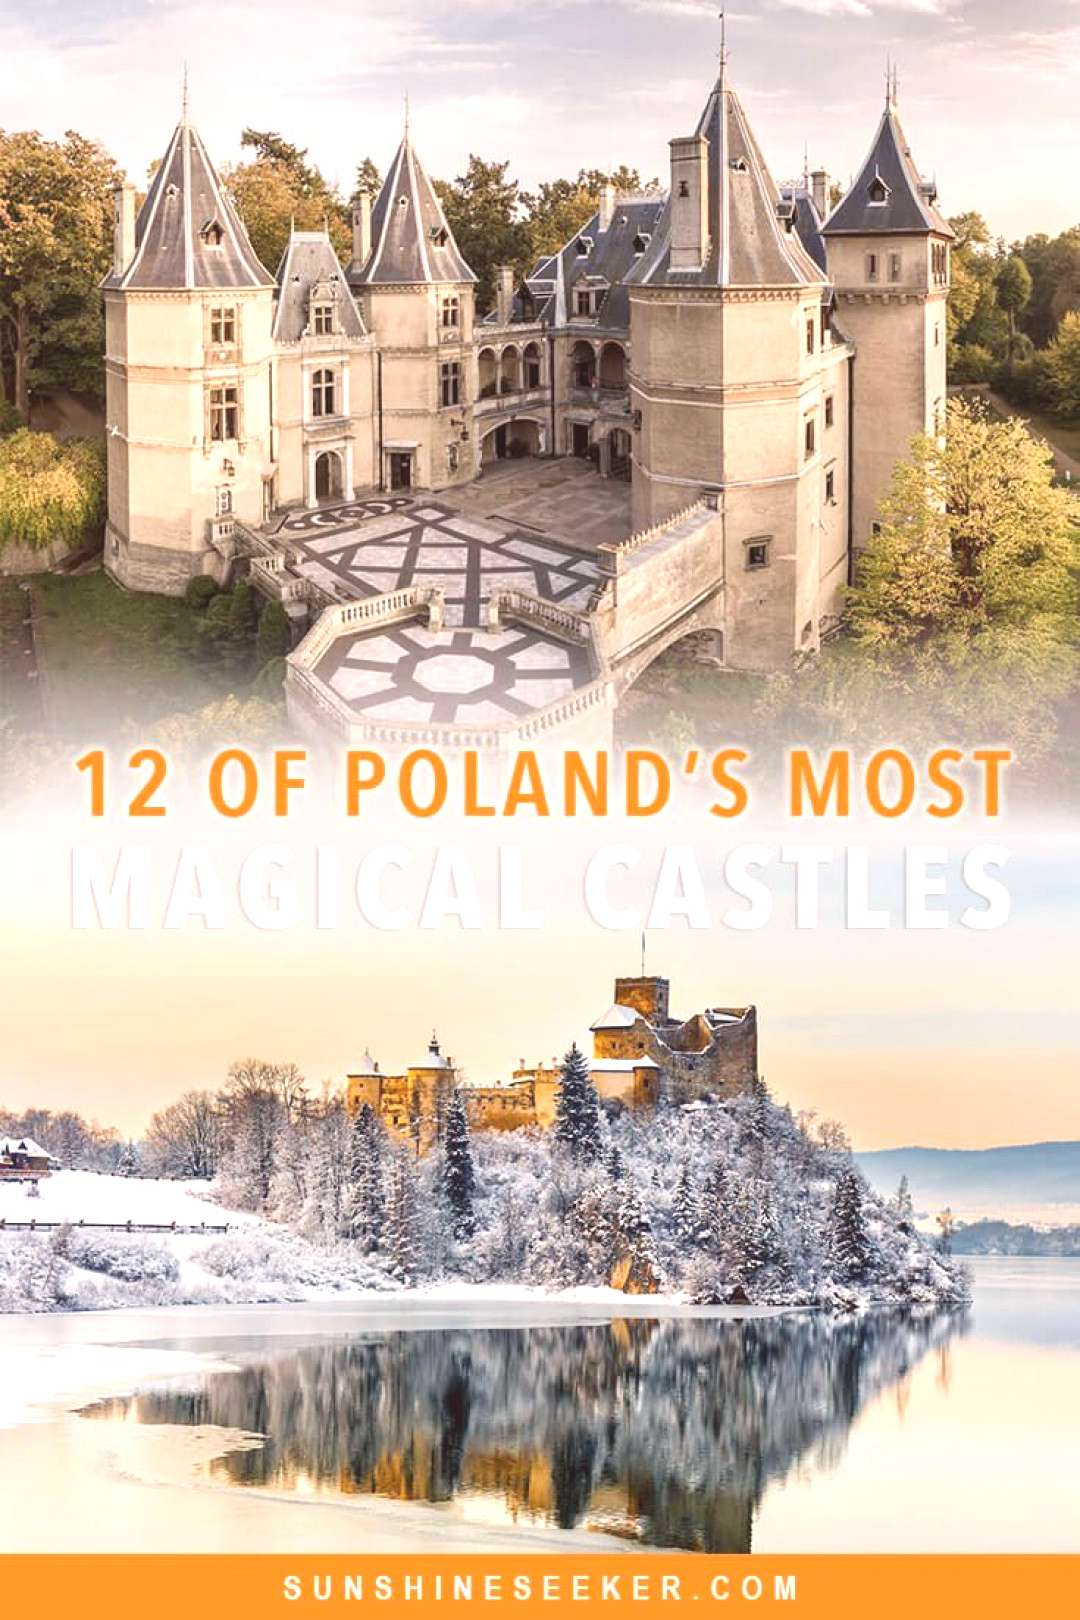 12 stunning fairytale castles in Poland you have to see! 12 of the most beautiful fairytale castles